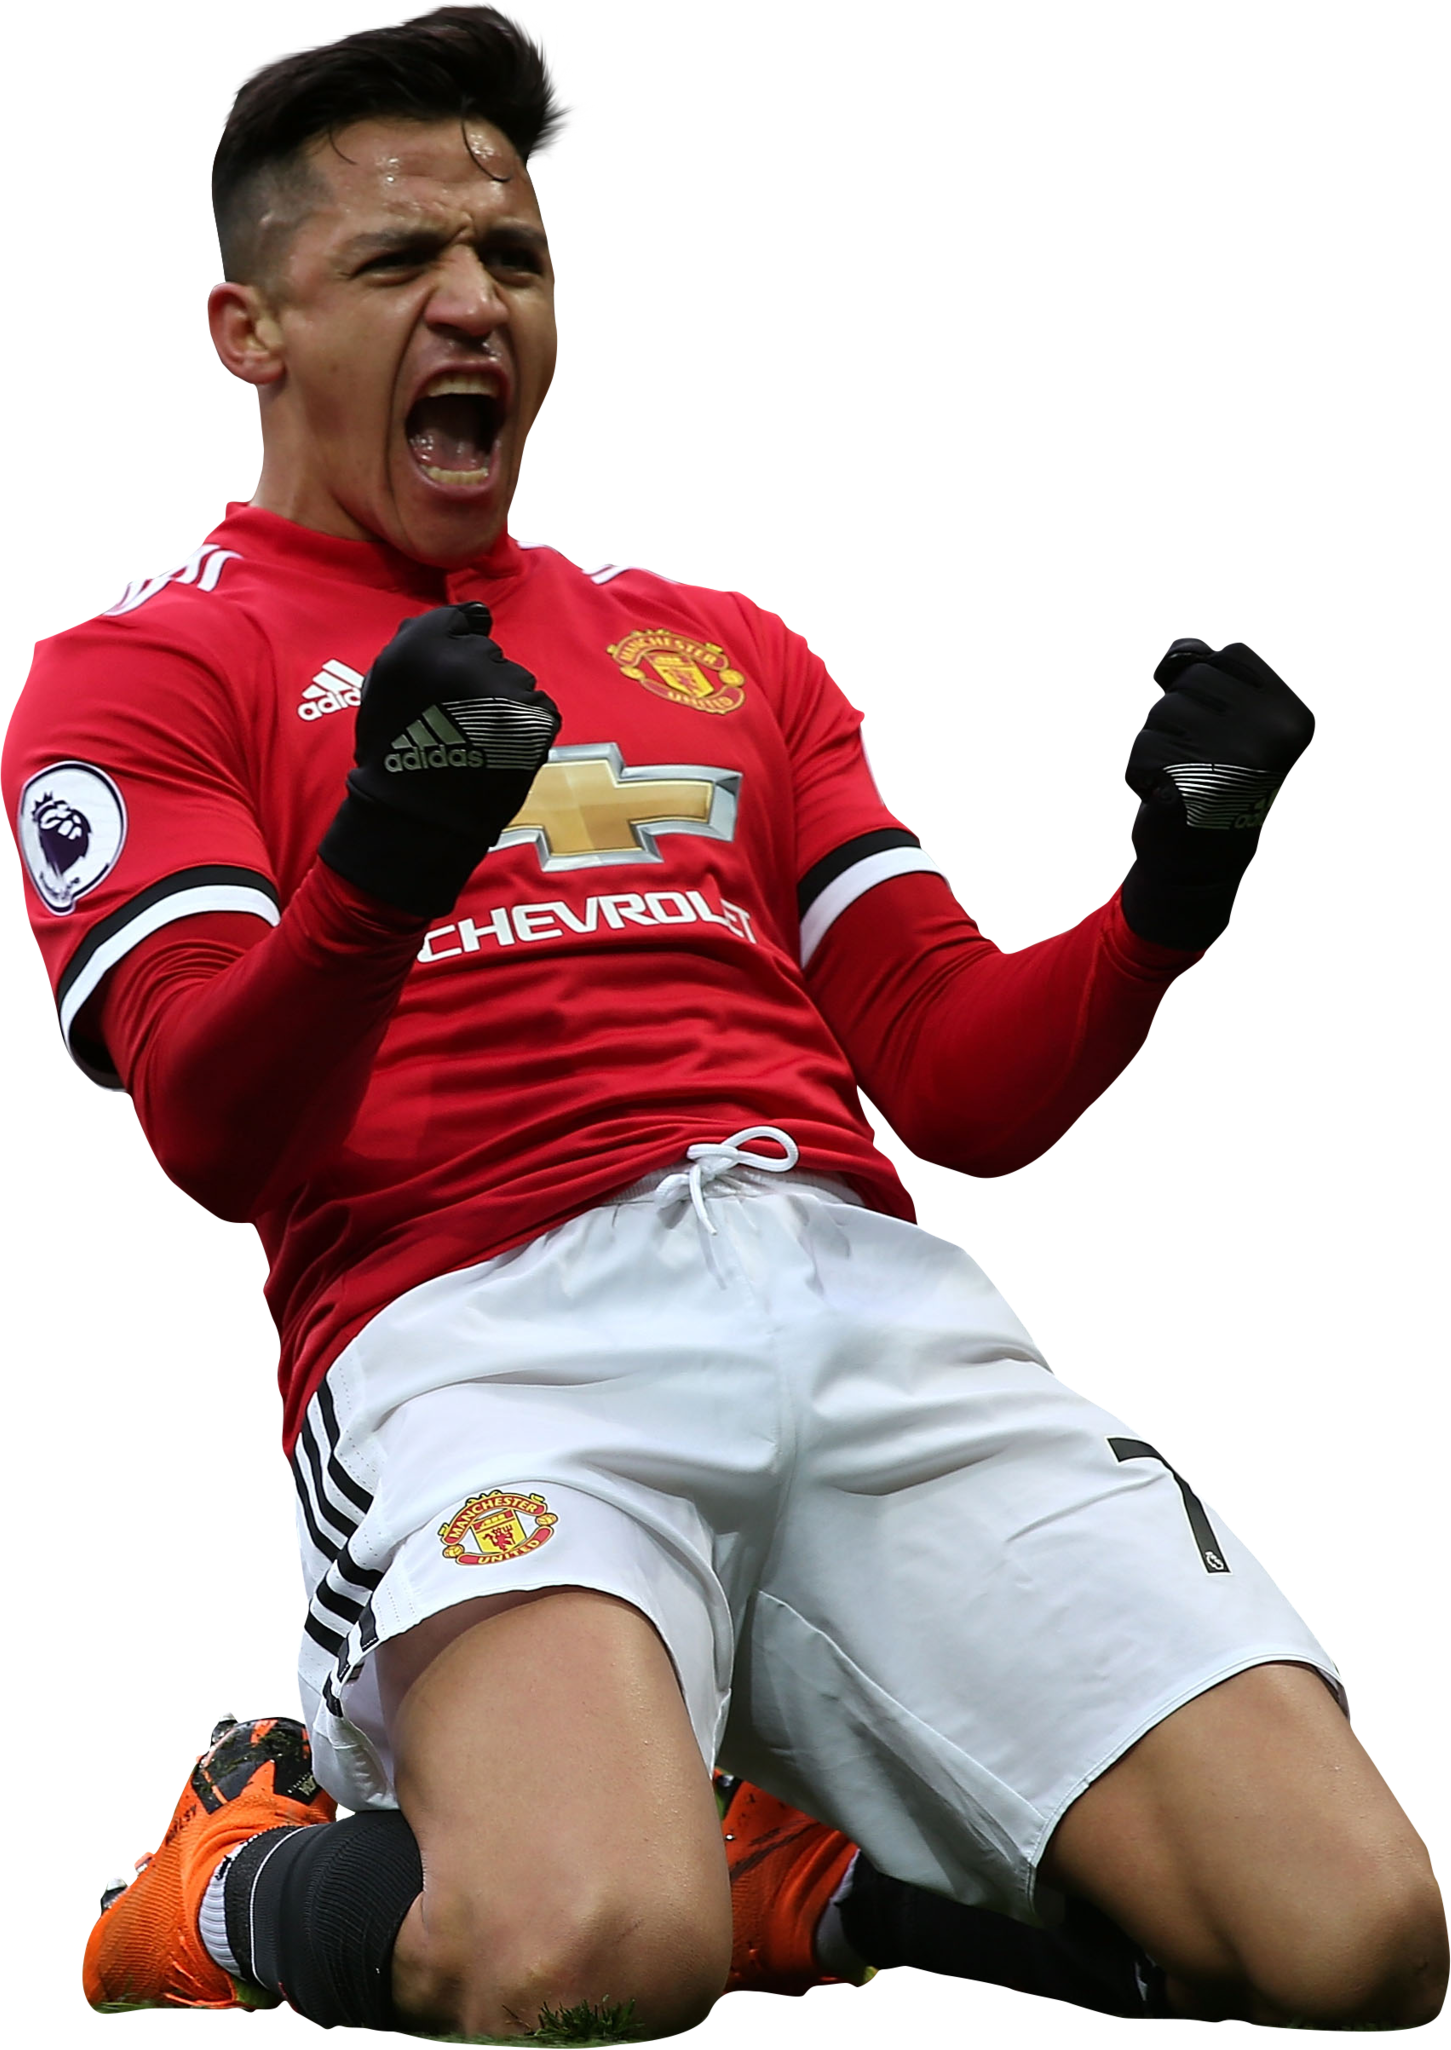 Alexis Sanchez Manchester United Football Club Manchester United Football Alexis Sanchez